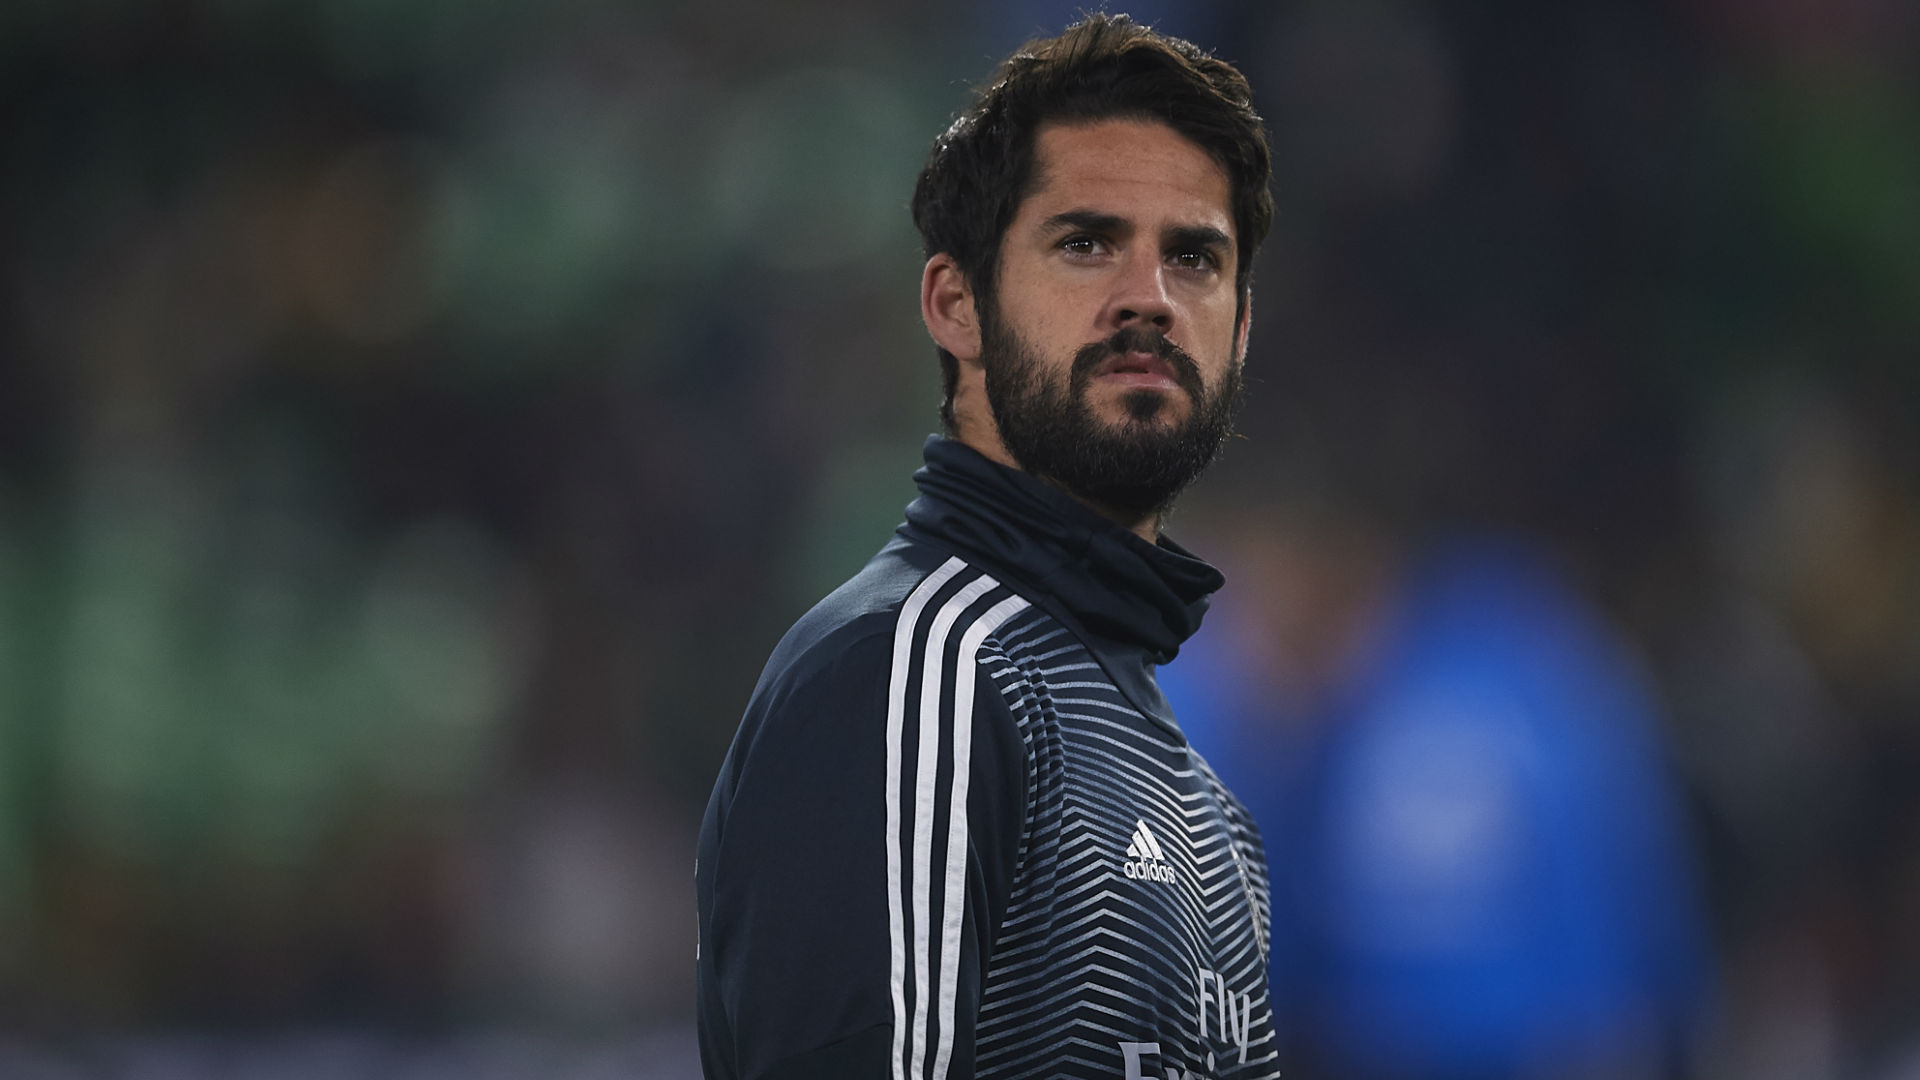 Isco Real Madrid 2019